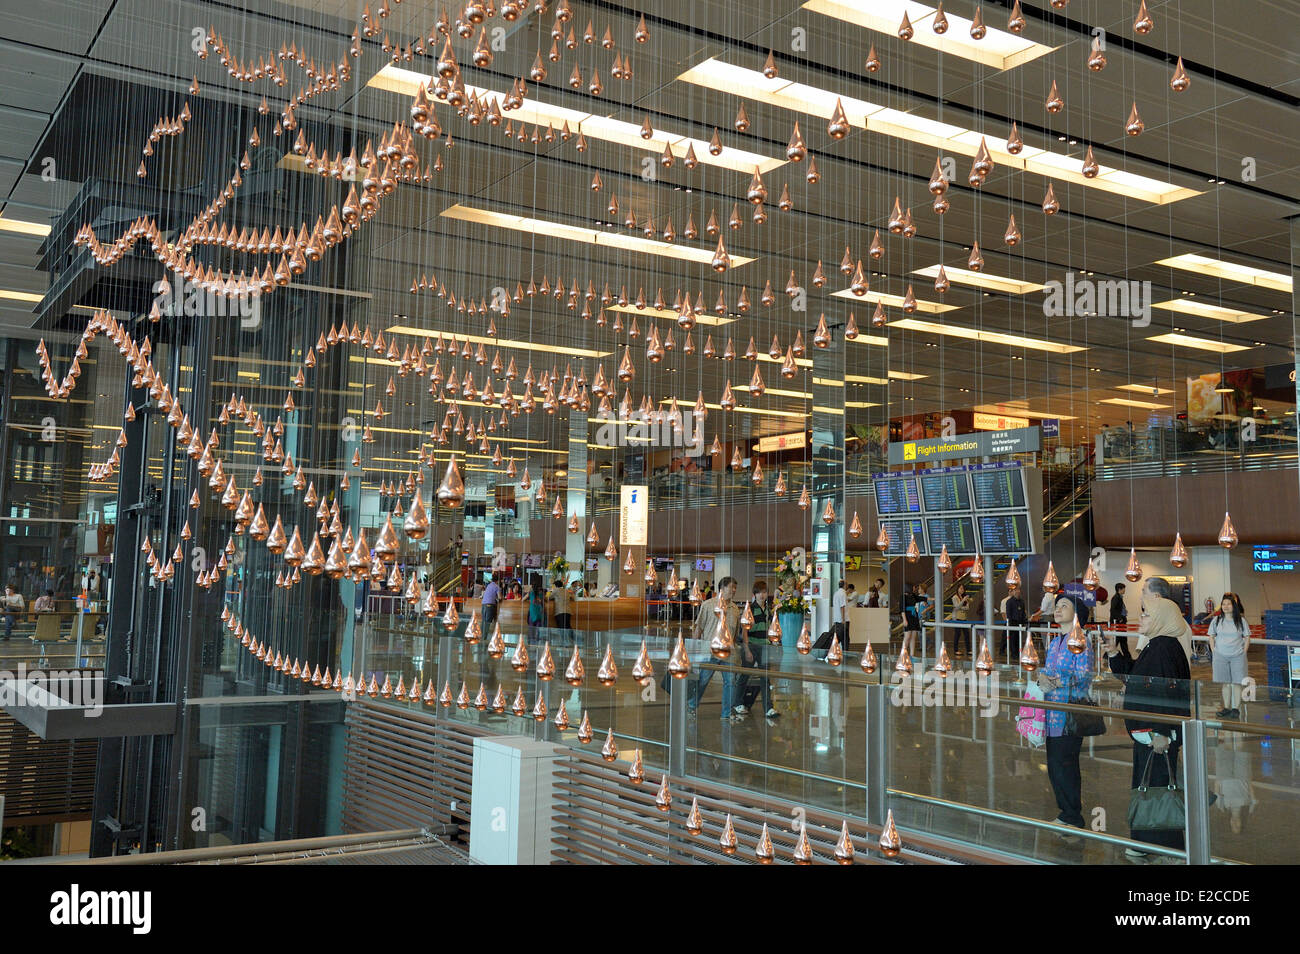 Singapore, in Terminal 1 of Changi Airport is a relaxing artistic work, Kinetic Rain, by Joachim Sauter from ART - Stock Image